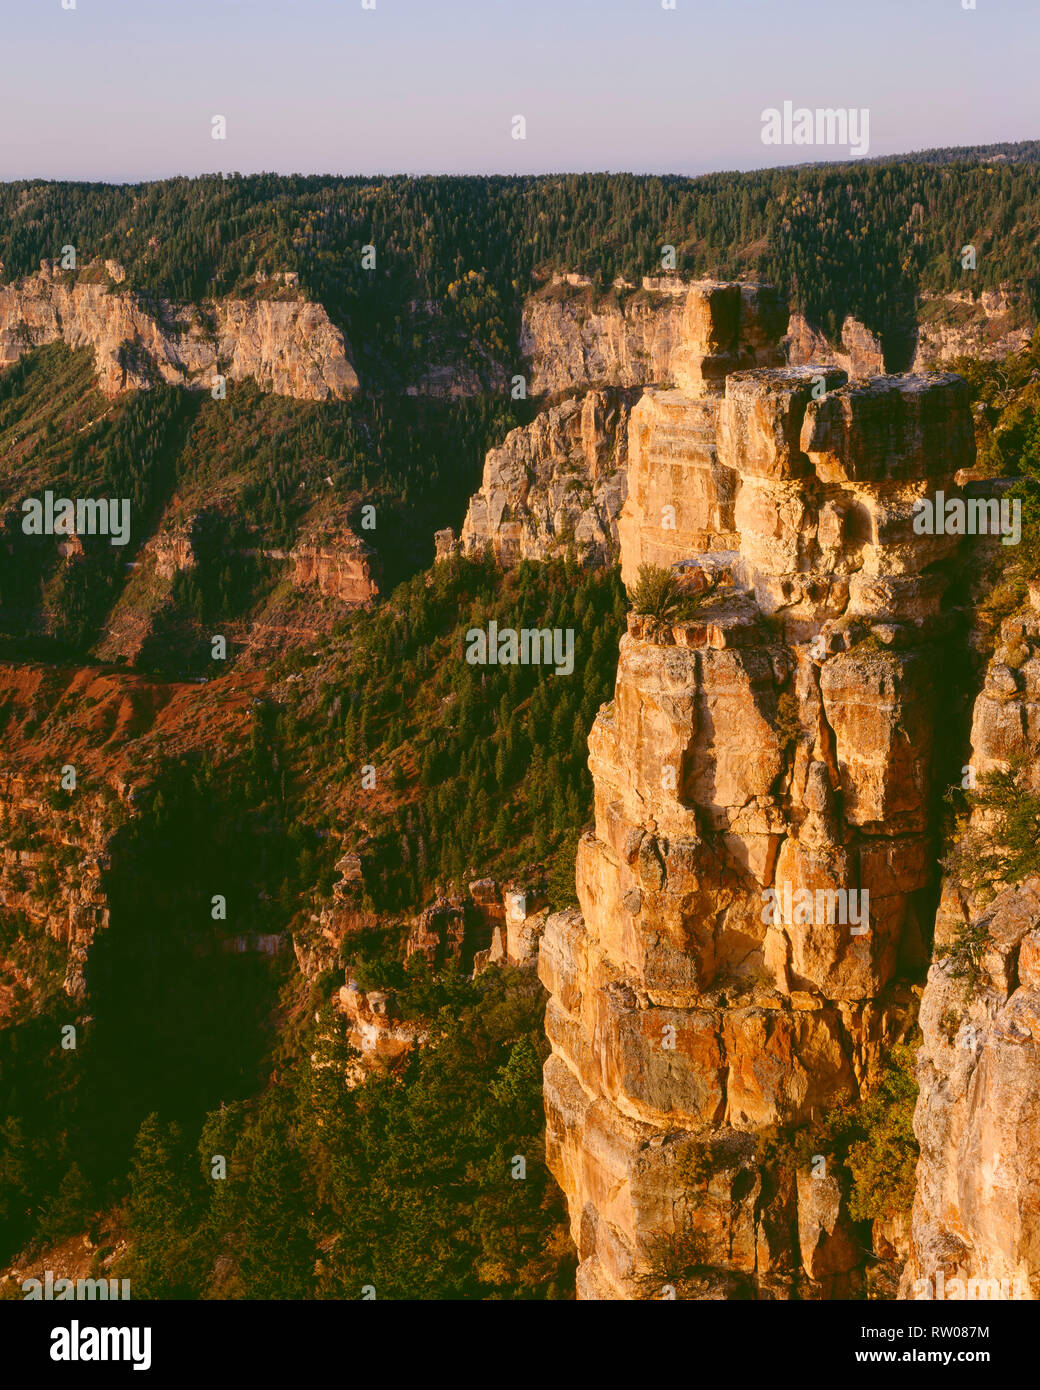 USA, Arizona, Grand Canyon National Park, Sunrise light on Kaibab Limestone with Walhalla Plateau in the distance, from Point Imperial. - Stock Image